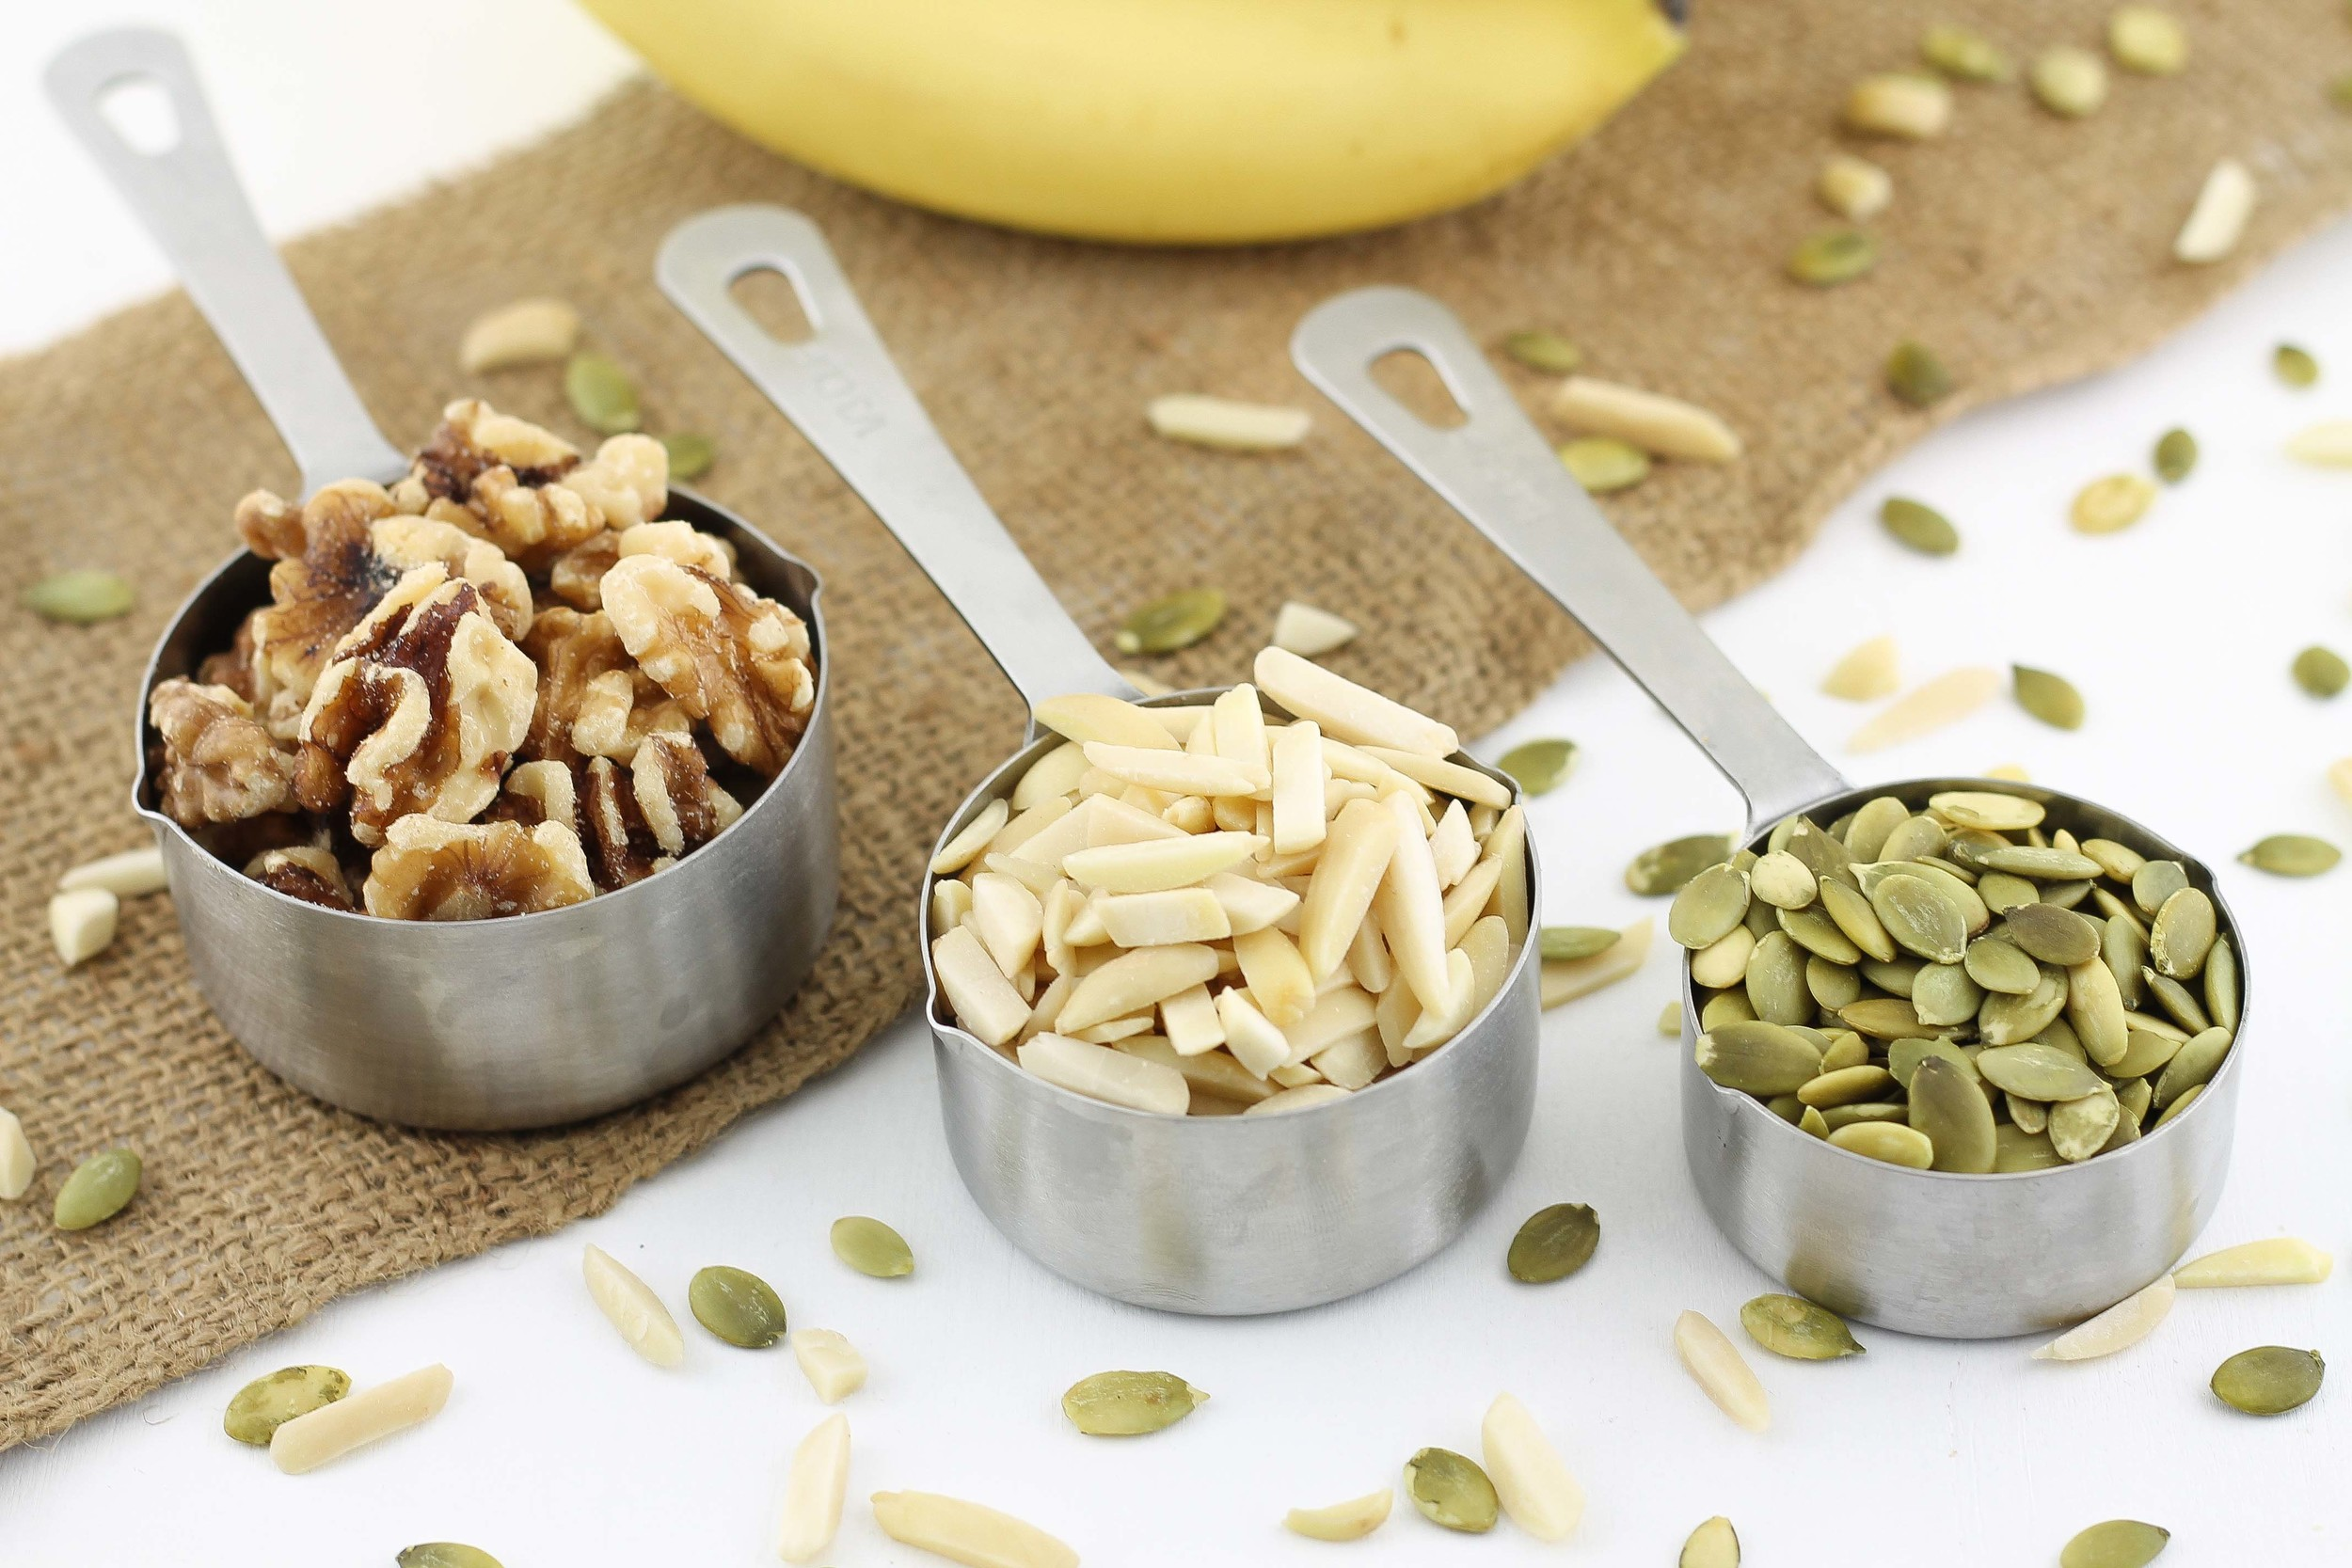 Almonds, Walnuts, Brazil Nuts, Mocha, Coffee, Pumpkin Seeds, Easy, Simple, Paleo Diet, Recipes, Breakfast, Gluten Free